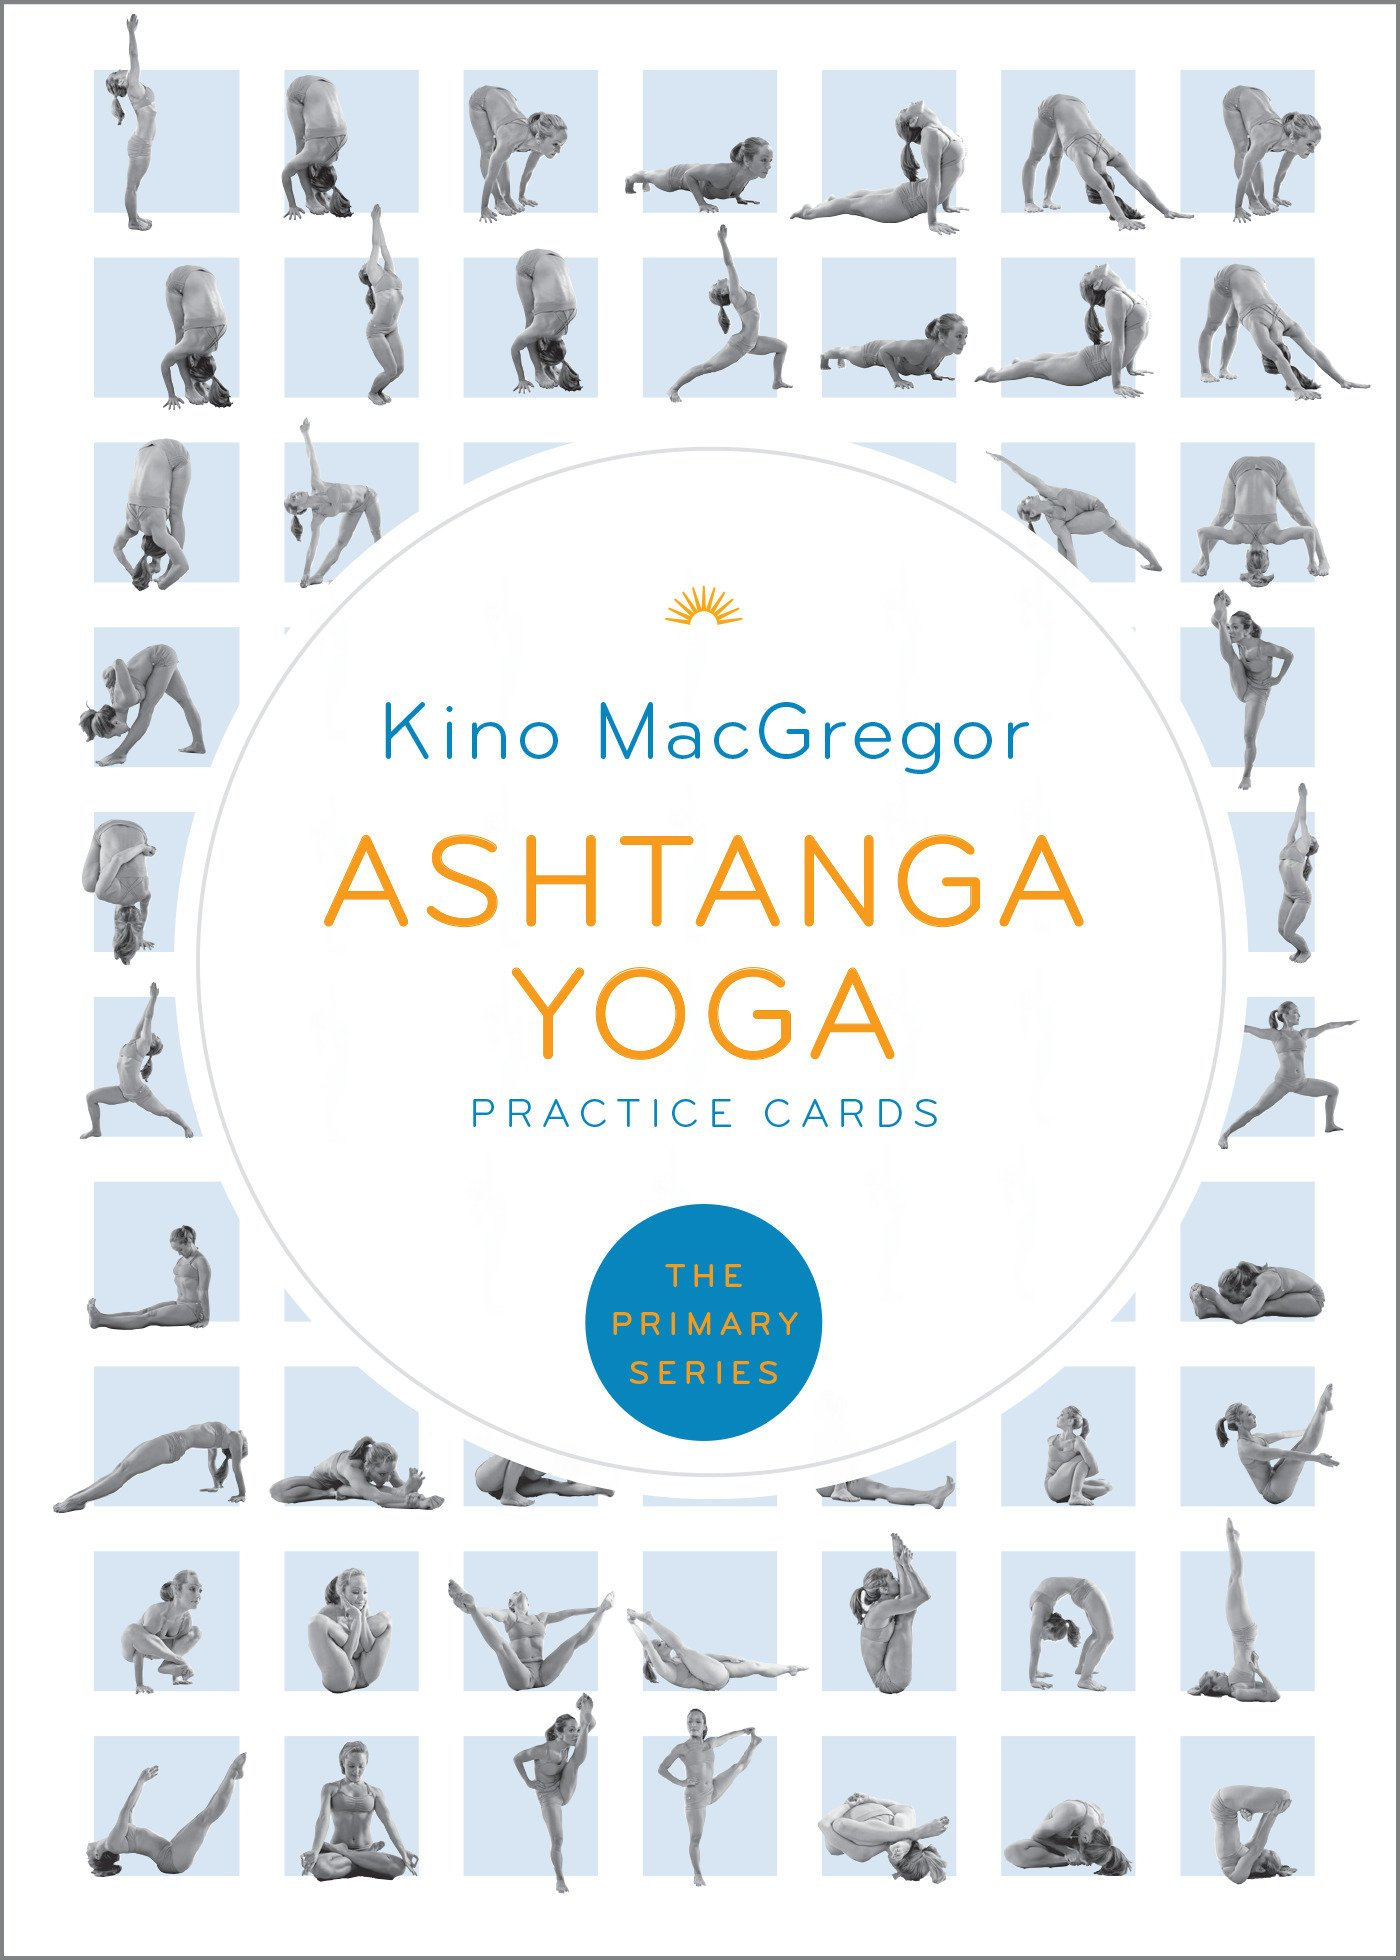 Ashtanga Yoga Practice Cards The Primary Series Macgregor Kino 9781611806489 Amazon Com Books